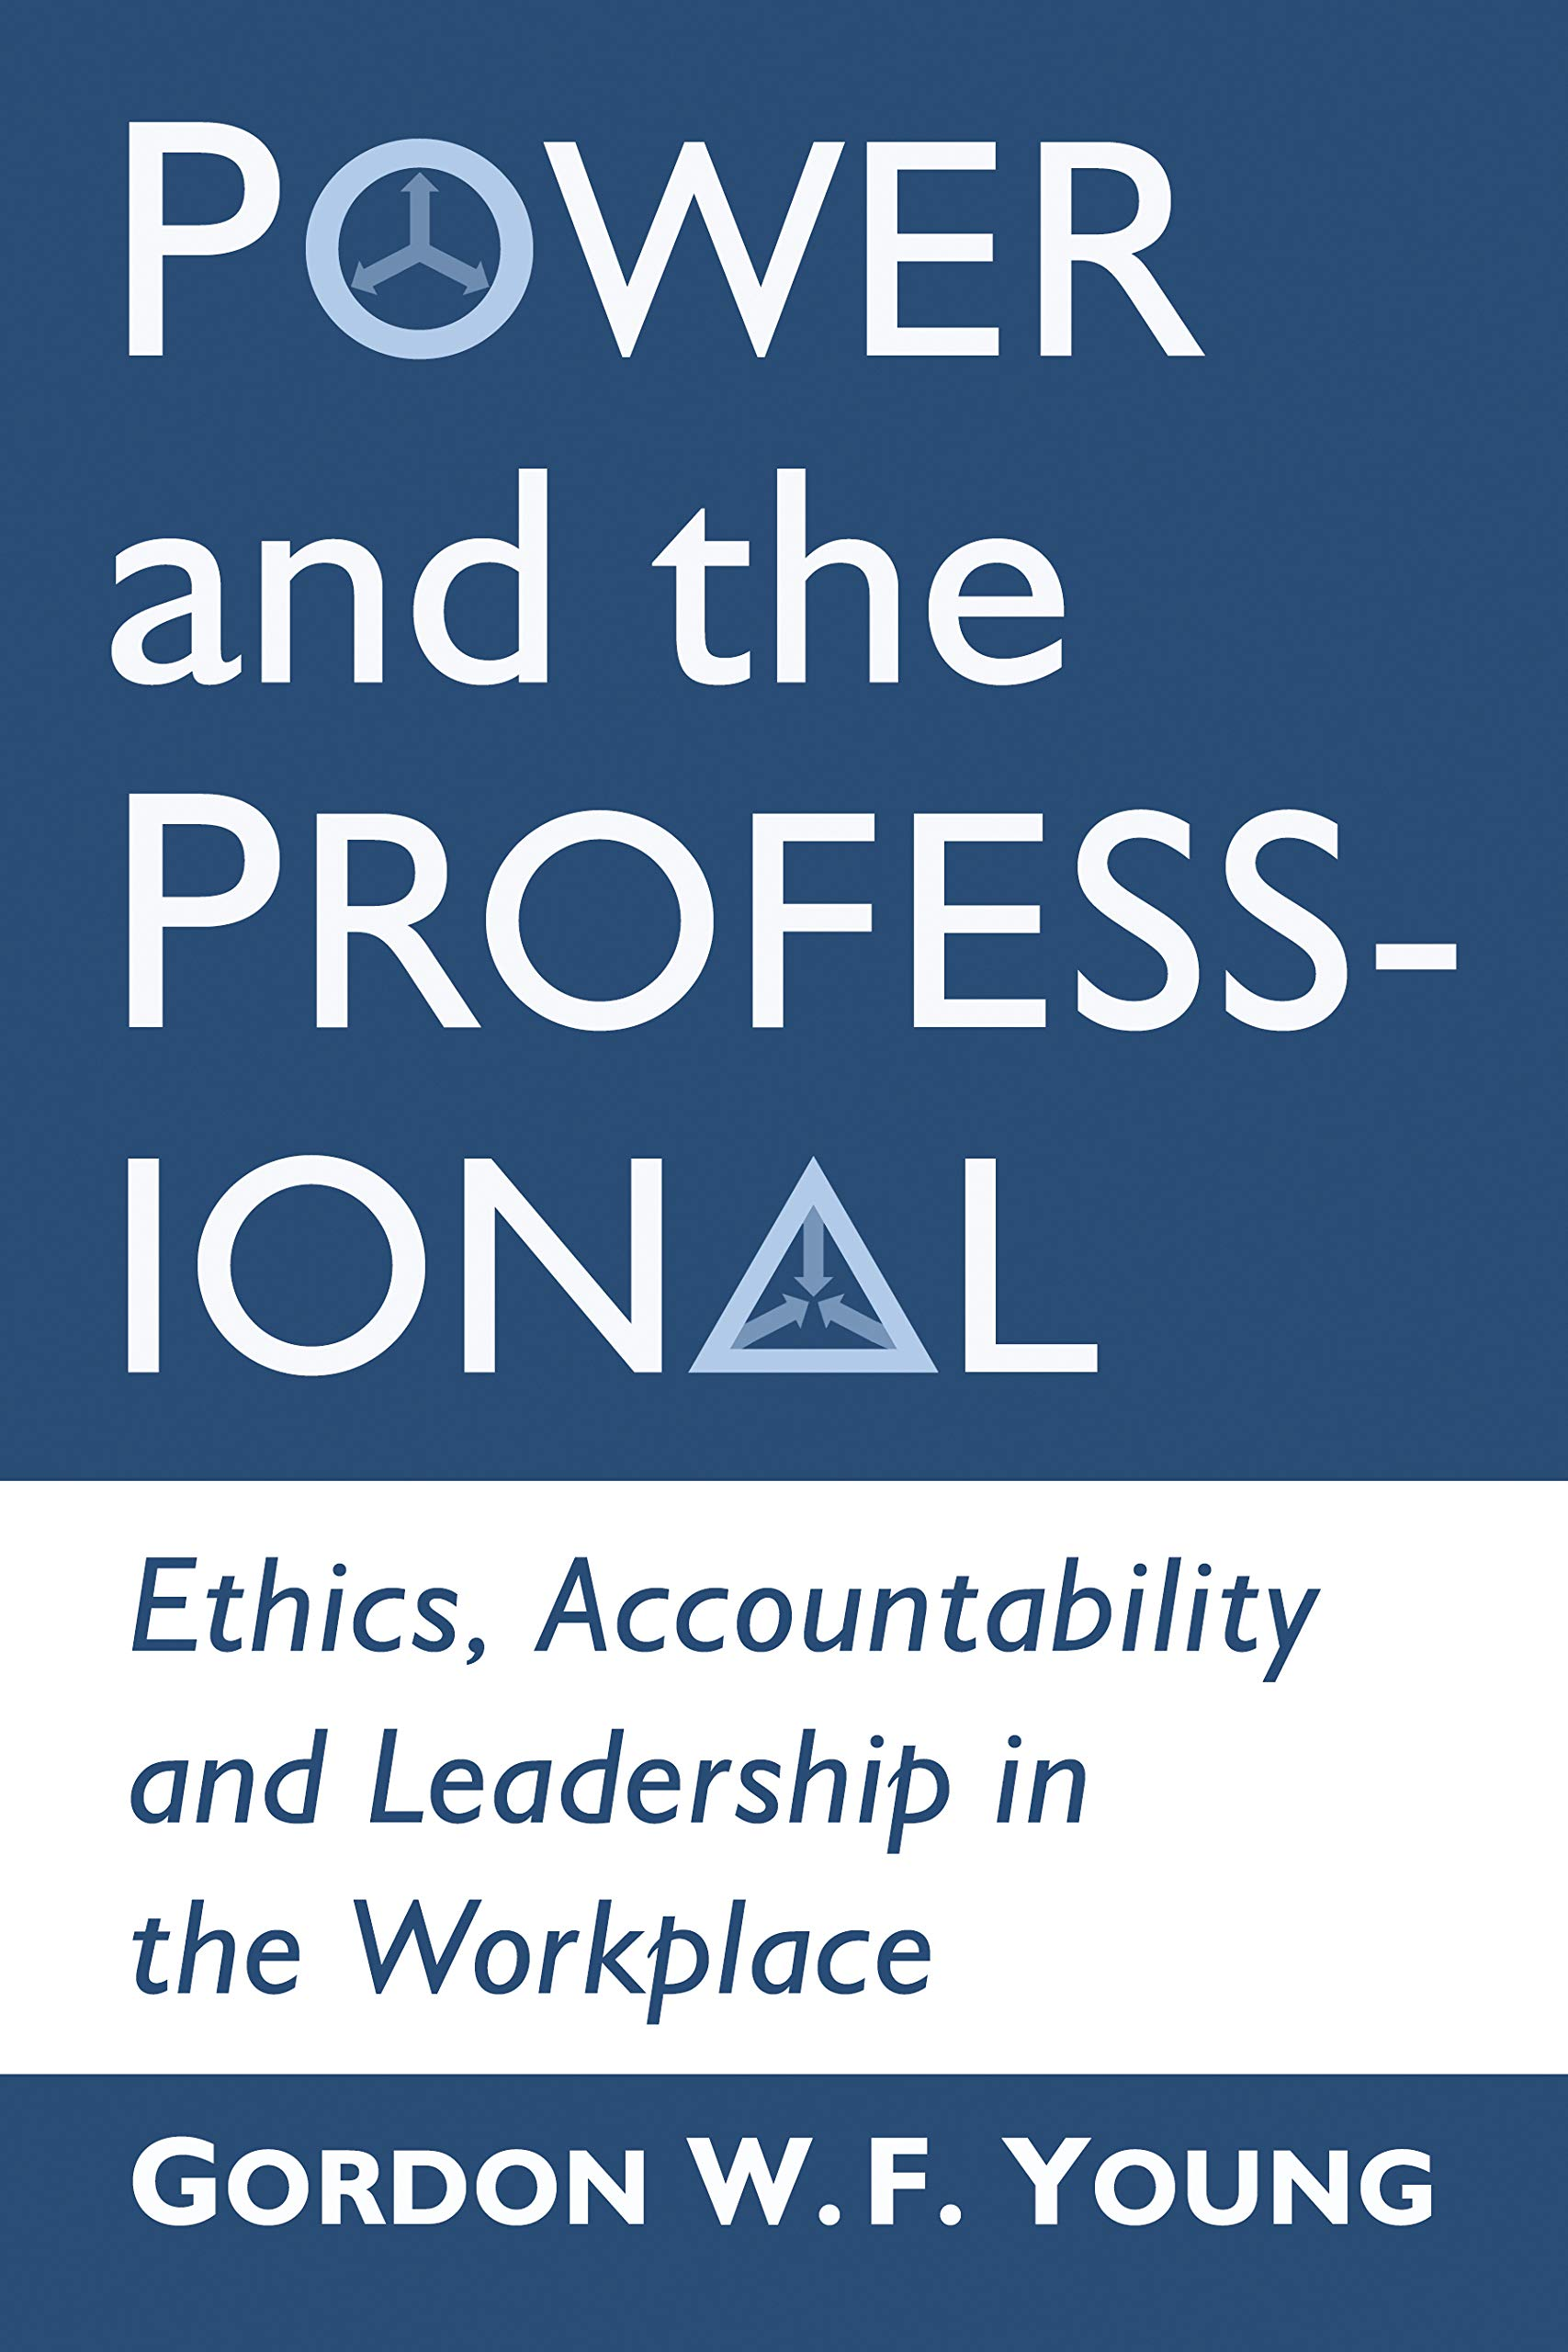 Power and the Professional: Ethics, Accountability and Leadership in the Workplace